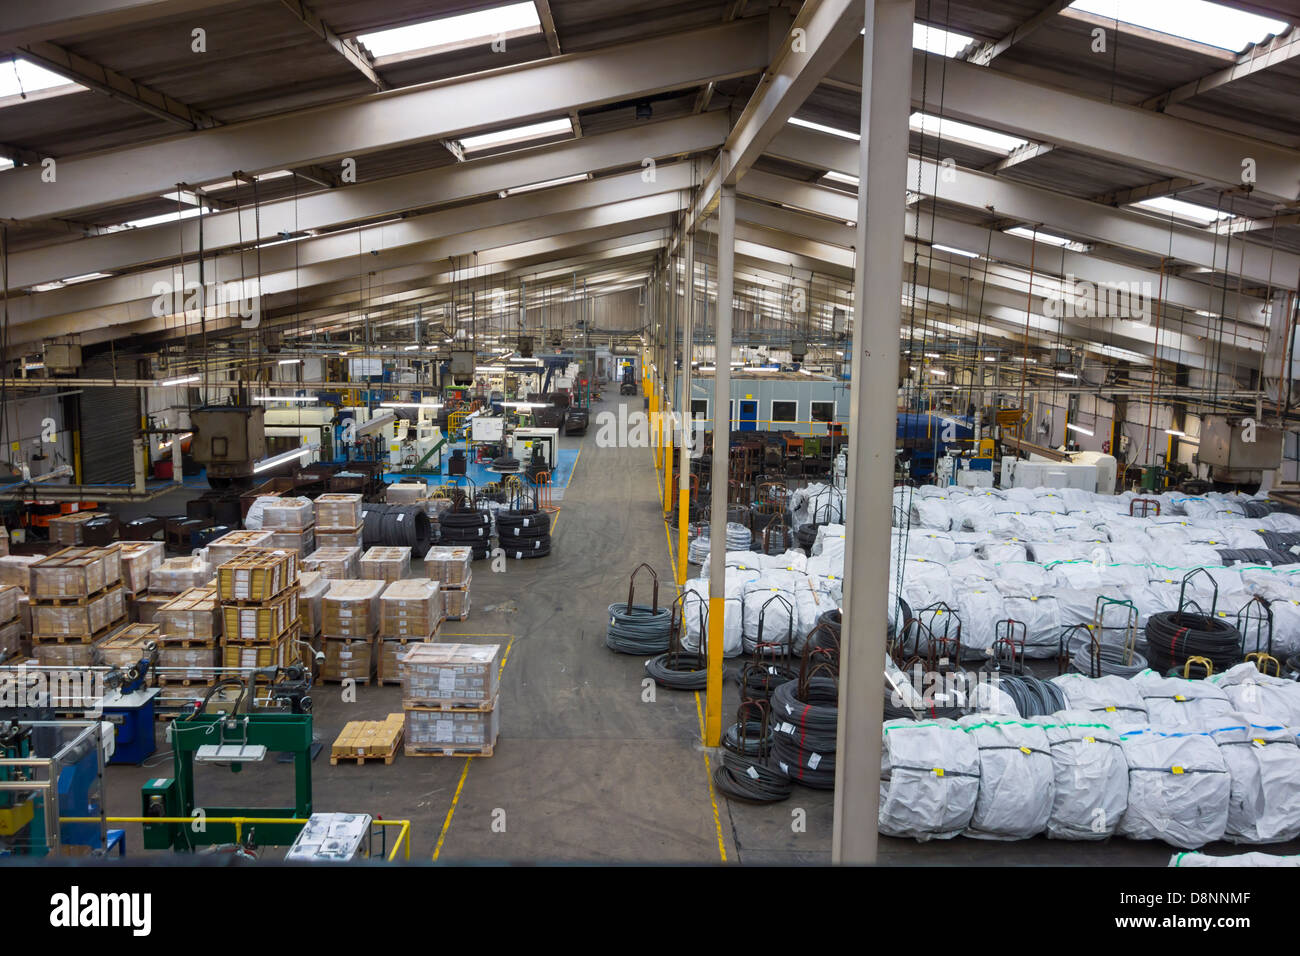 View inside of a British manufacturing plant or factory which specializes in the production of fasteners/nuts/bolts. - Stock Image